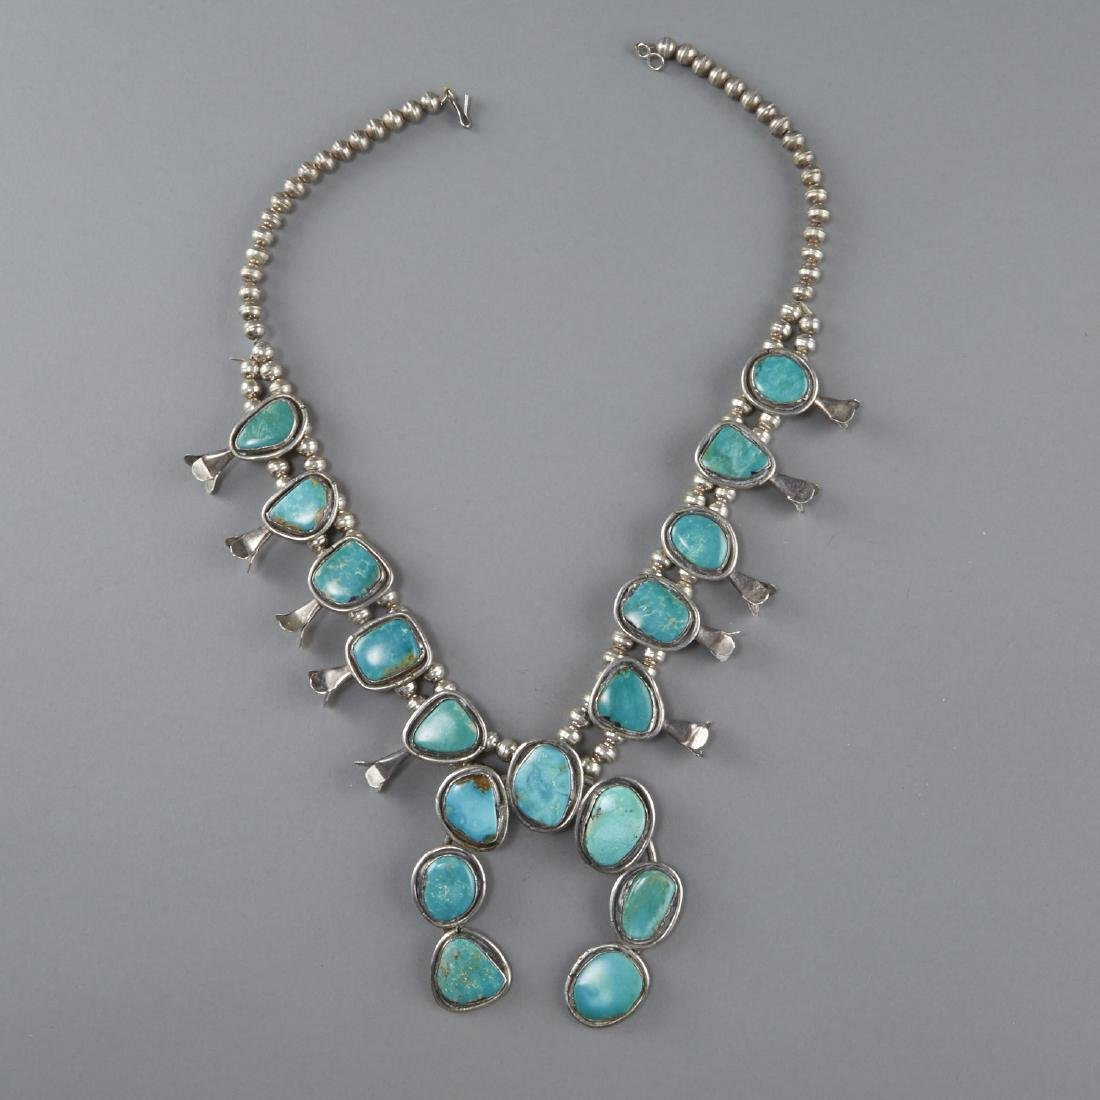 Southwestern Jewelry Silver, Turquoise, etc. - 2